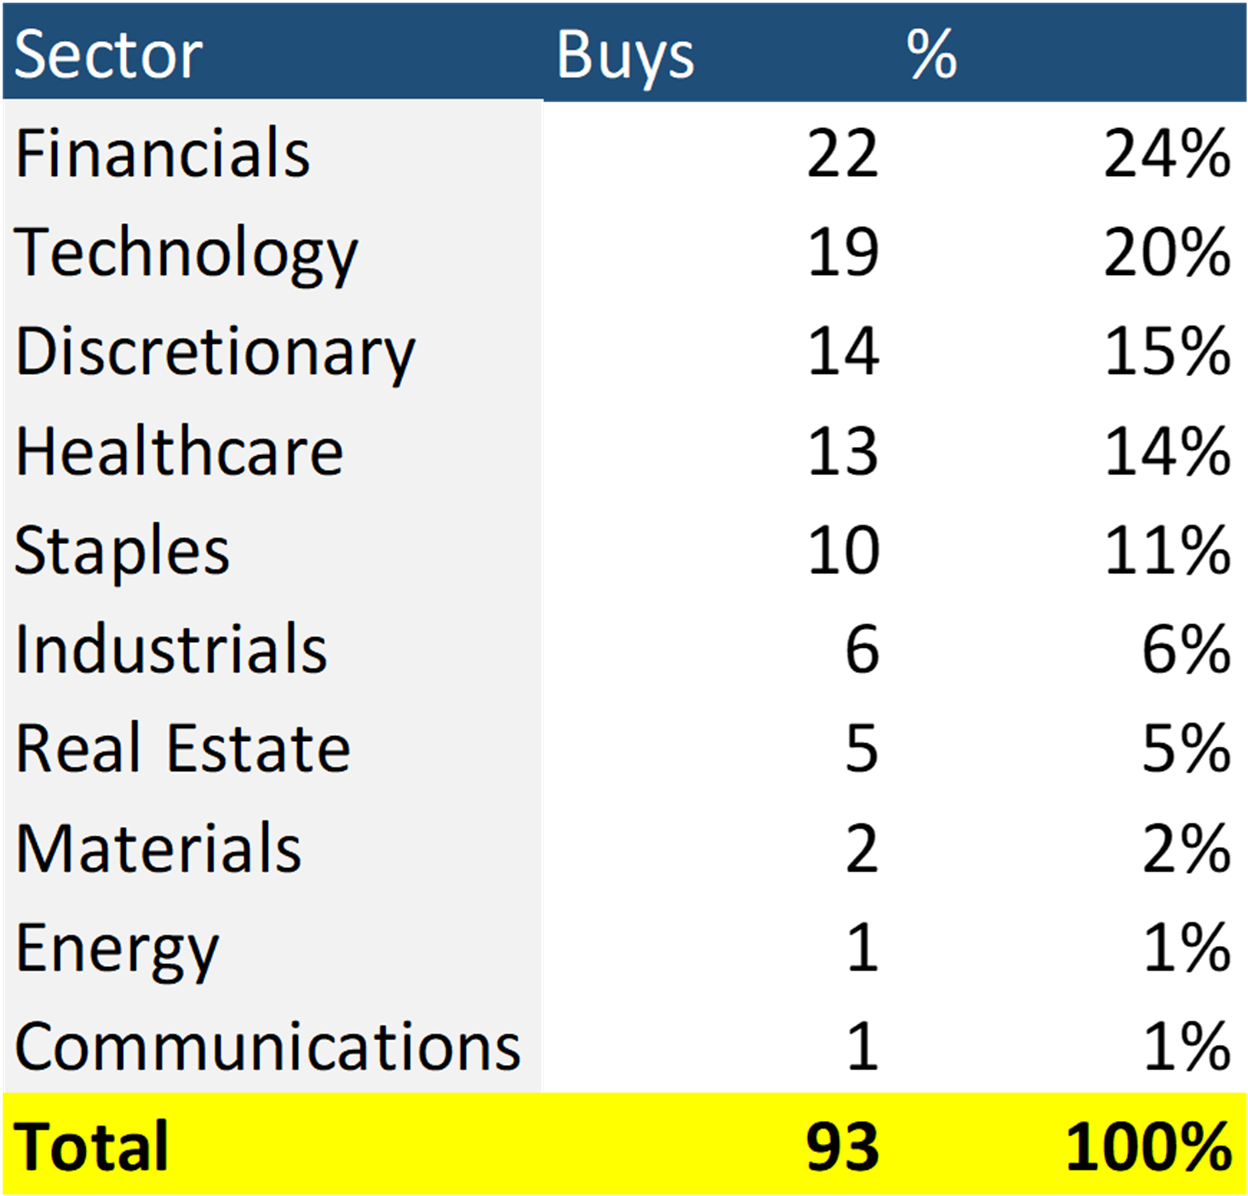 buying under the surface in growth stocks